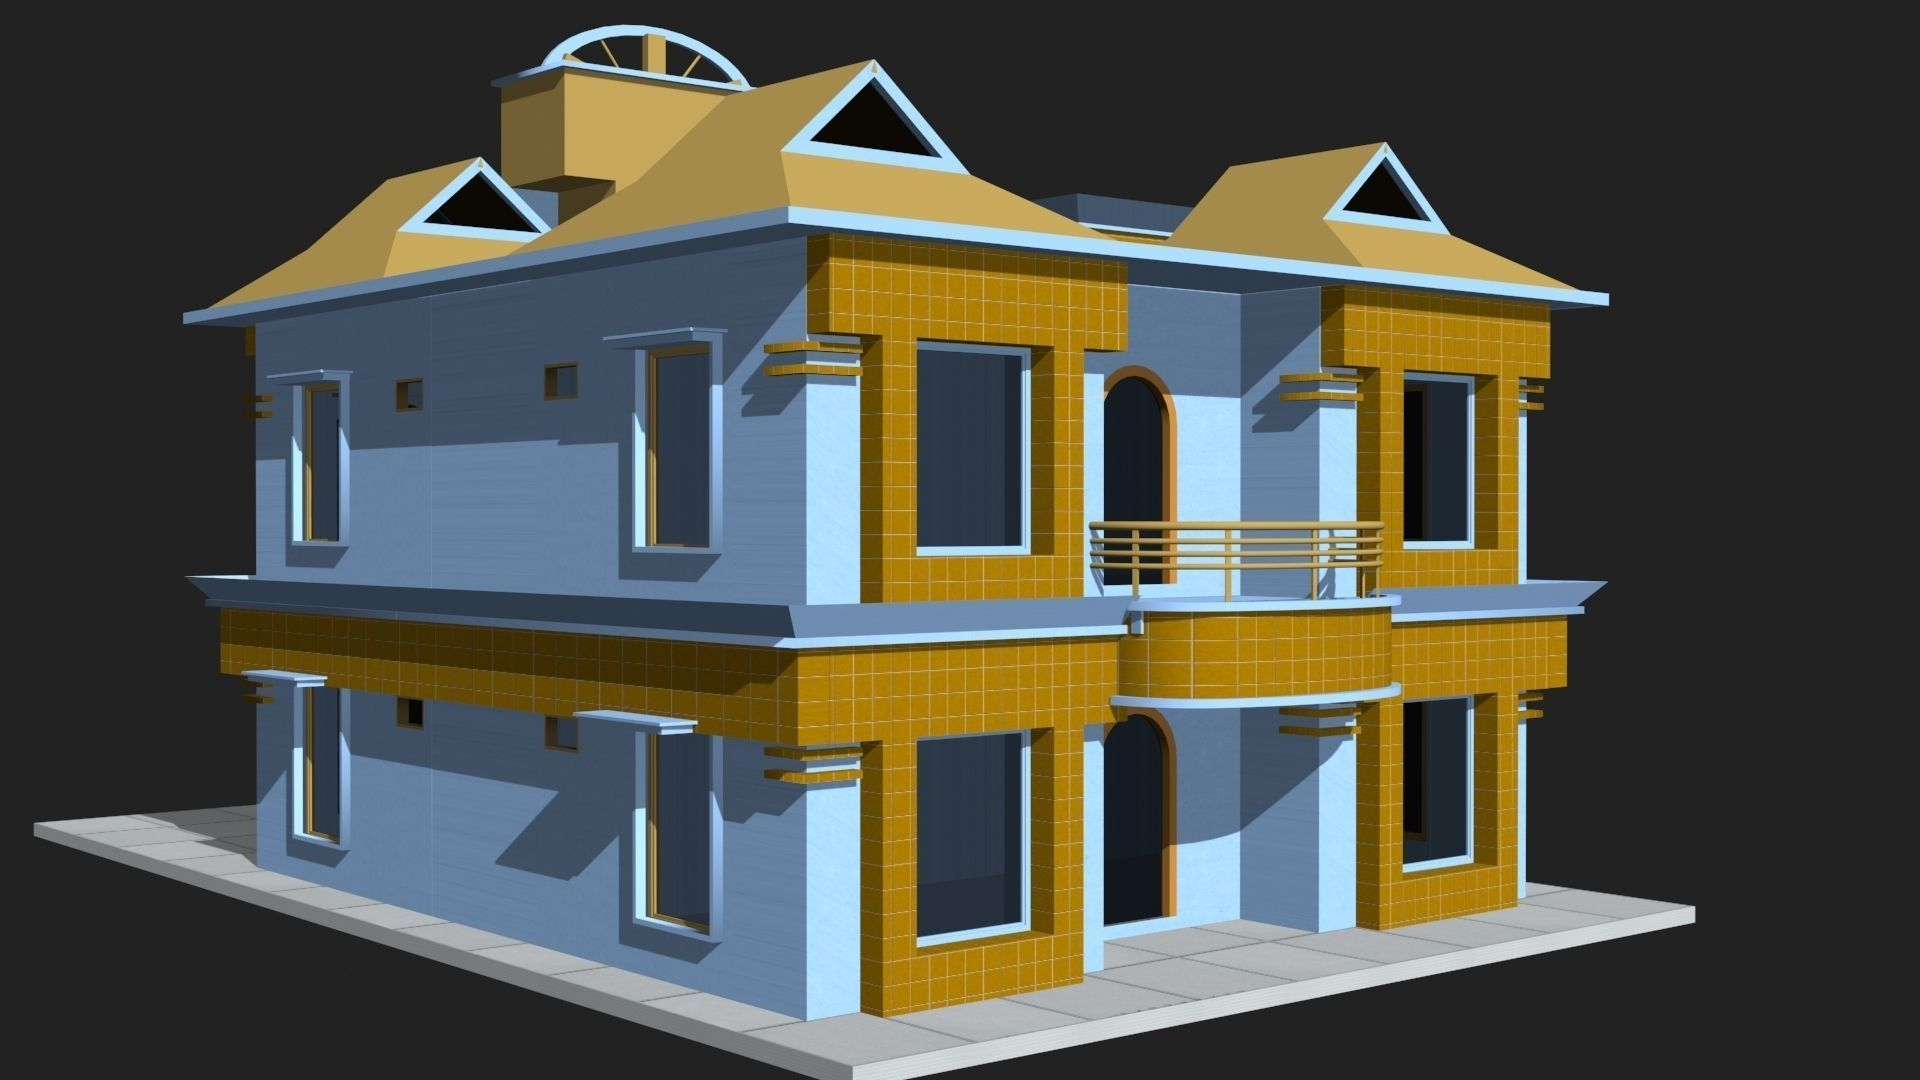 House building 3d model gallery for Build house online 3d free